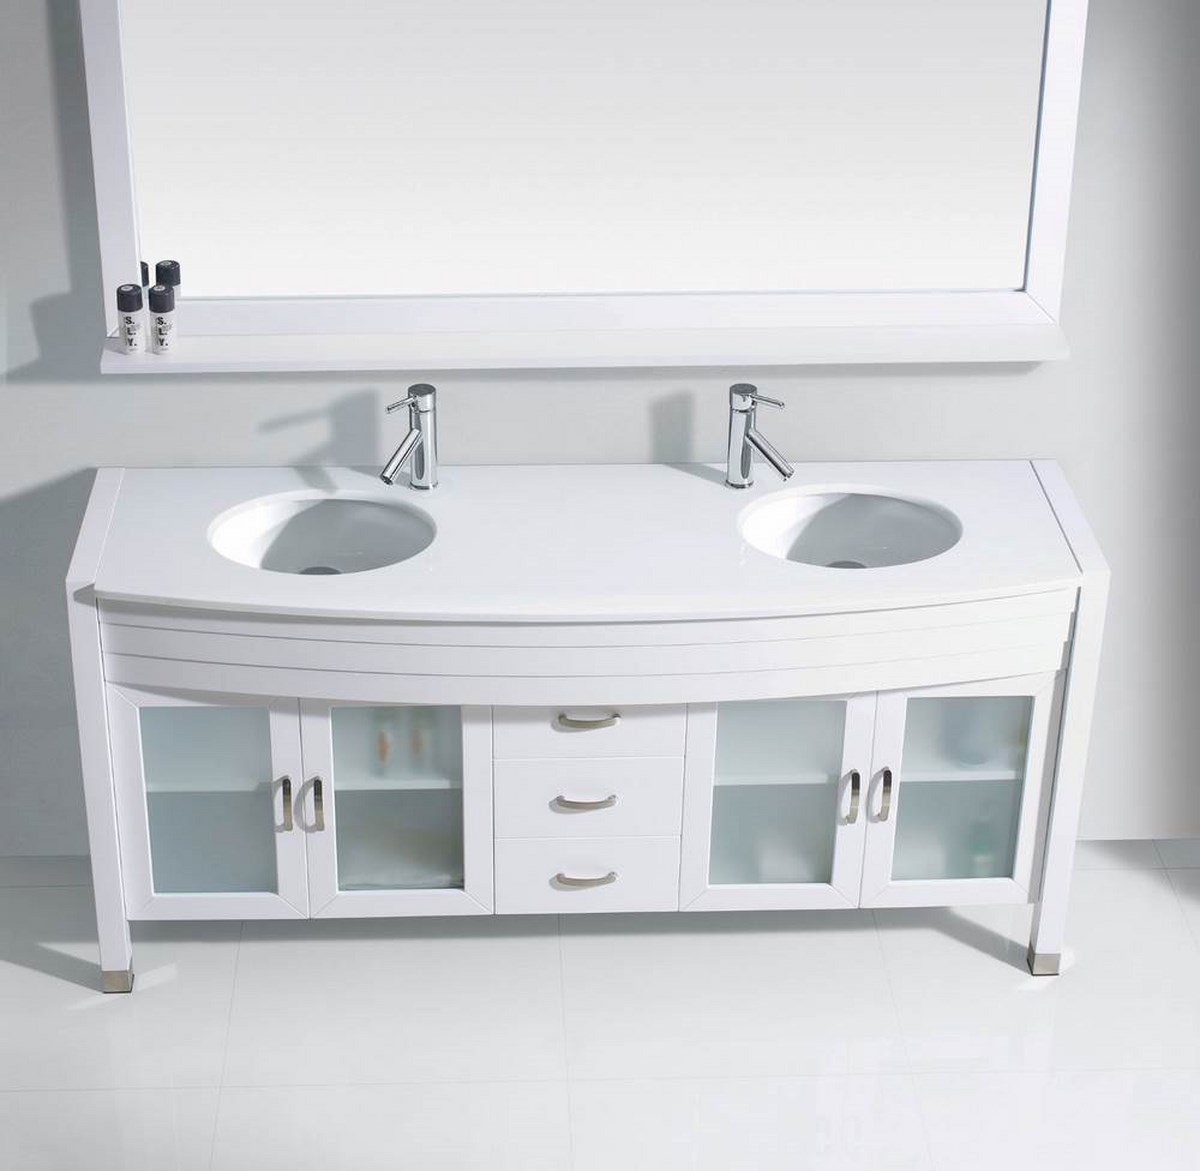 63 inch double bathroom vanity cabinet set in white efurniture mart